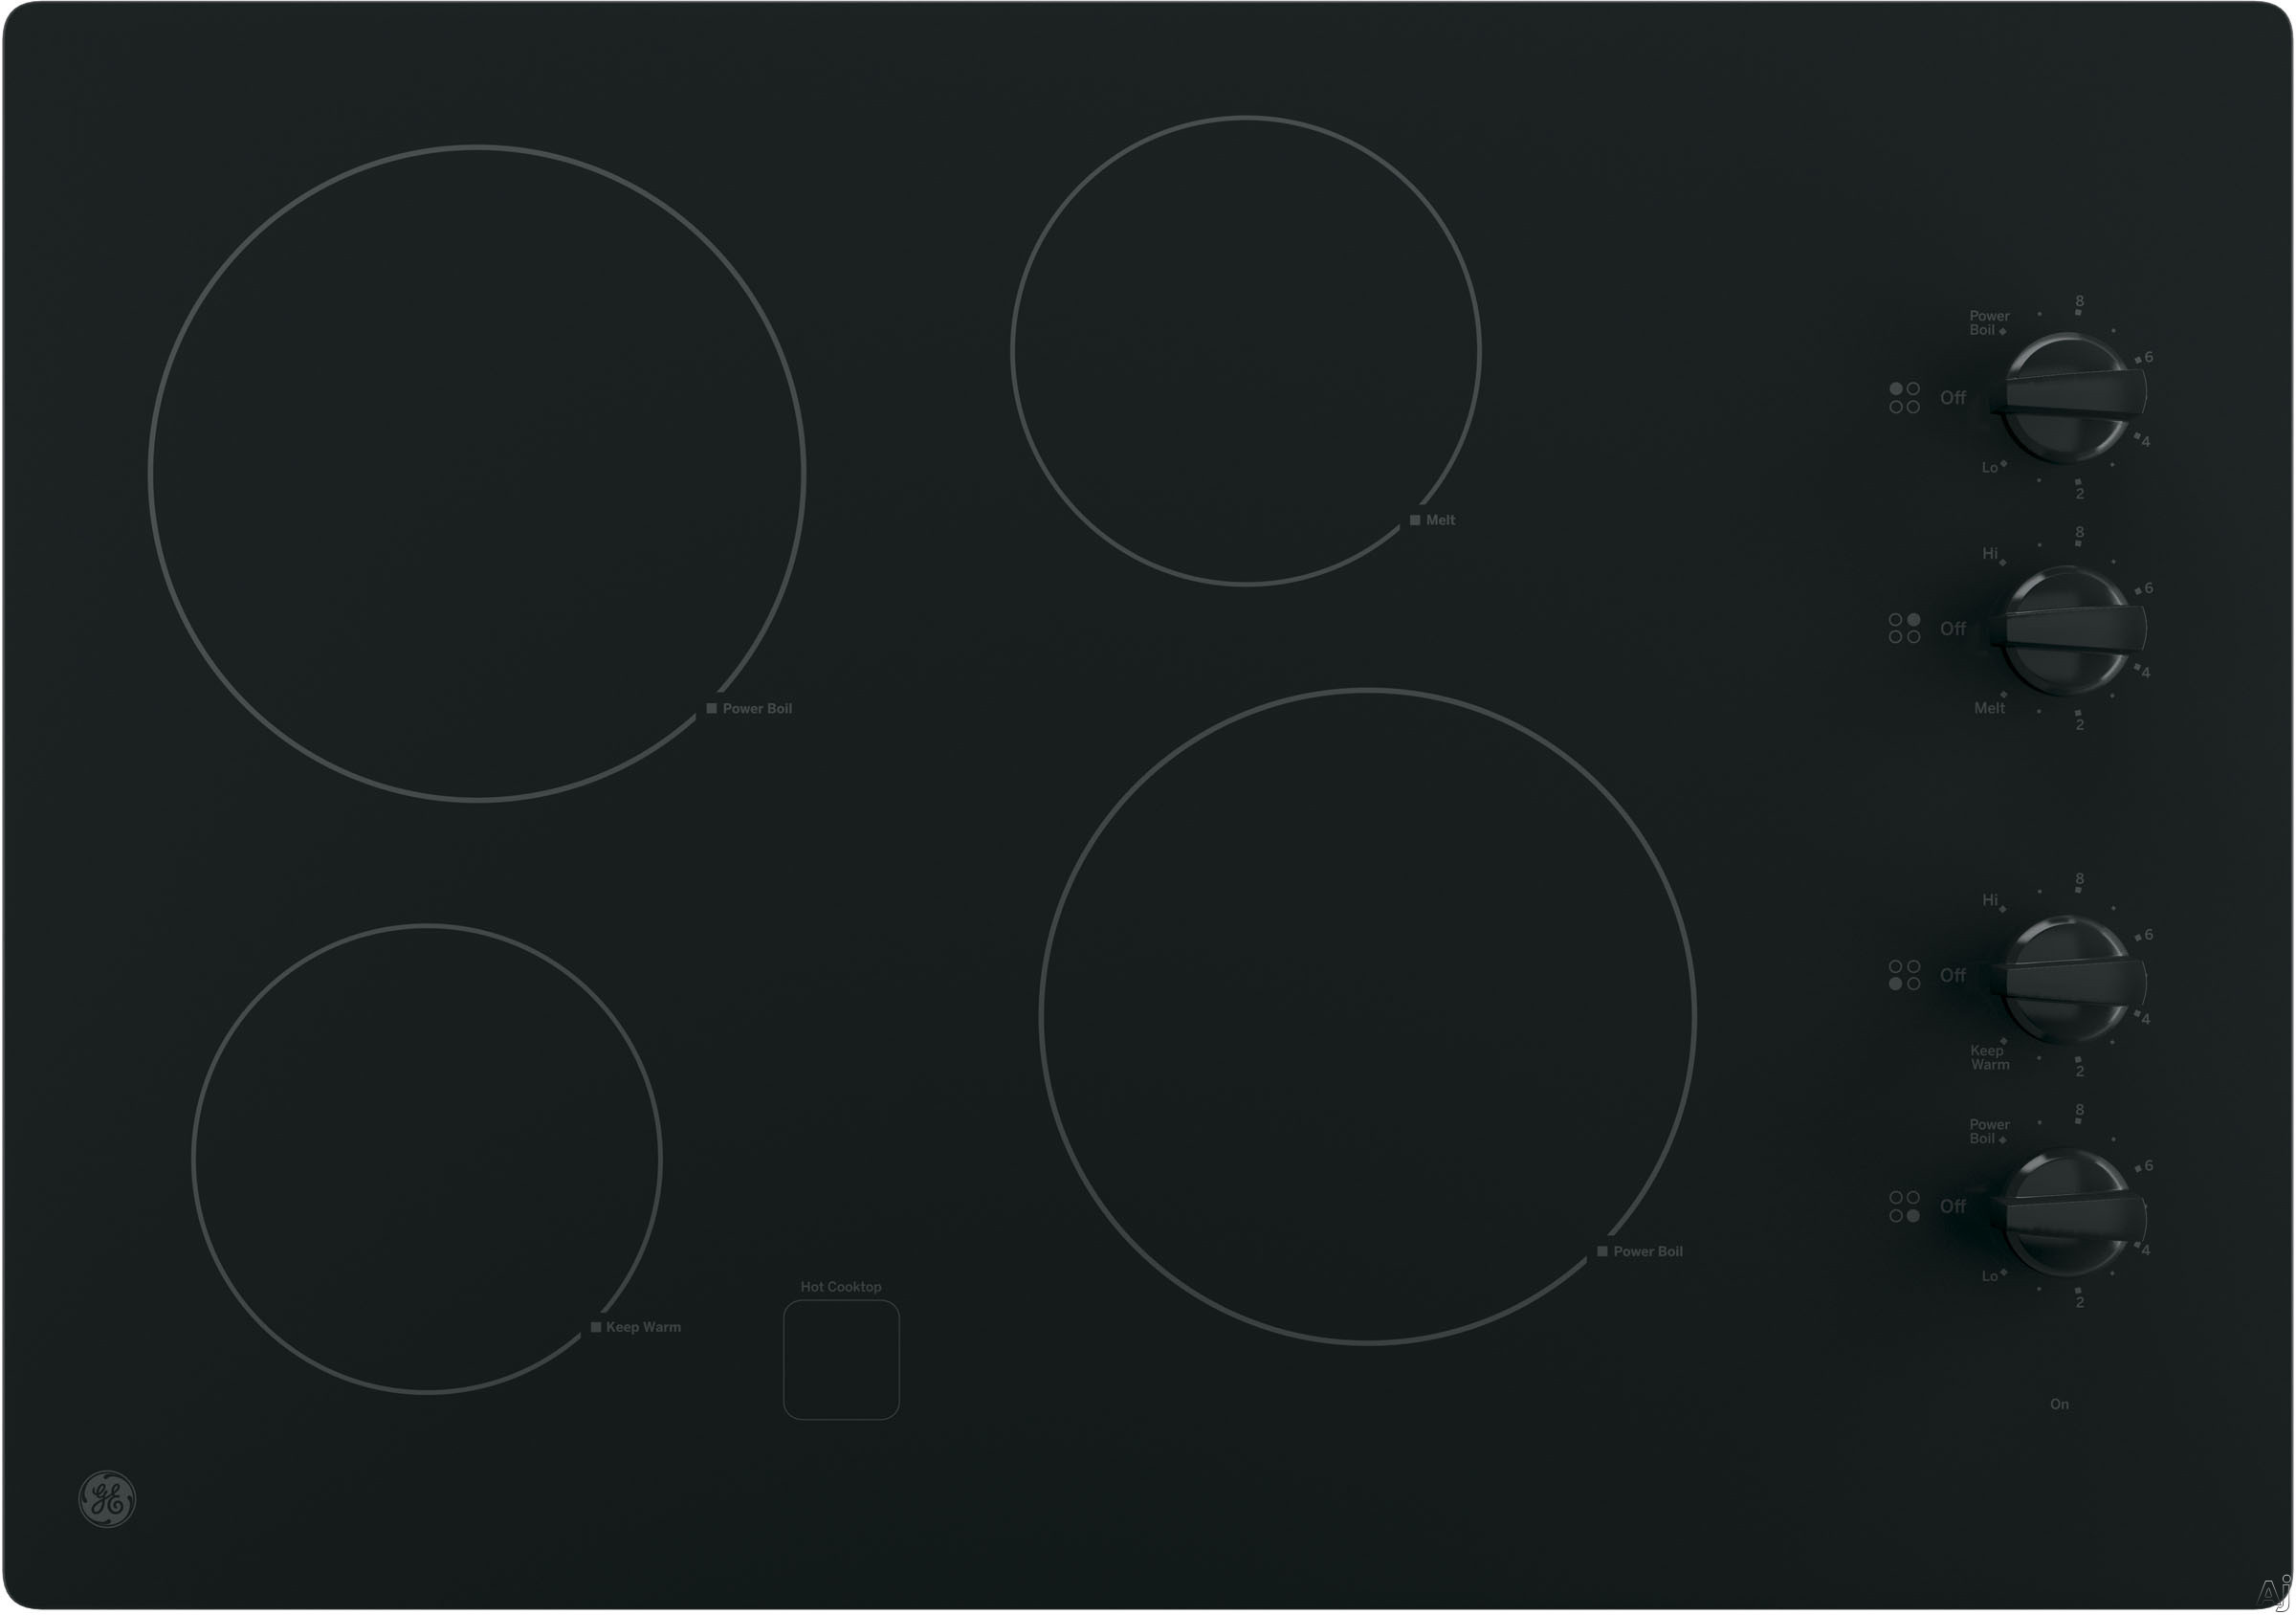 GE JP3030DJBB 30 Inch Smoothtop Electric Cooktop with 4 Radiant Elements, Knob Controls, Keep Warm Setting, Melt Setting, ADA Compliant and GE Fits! Guarantee: Black